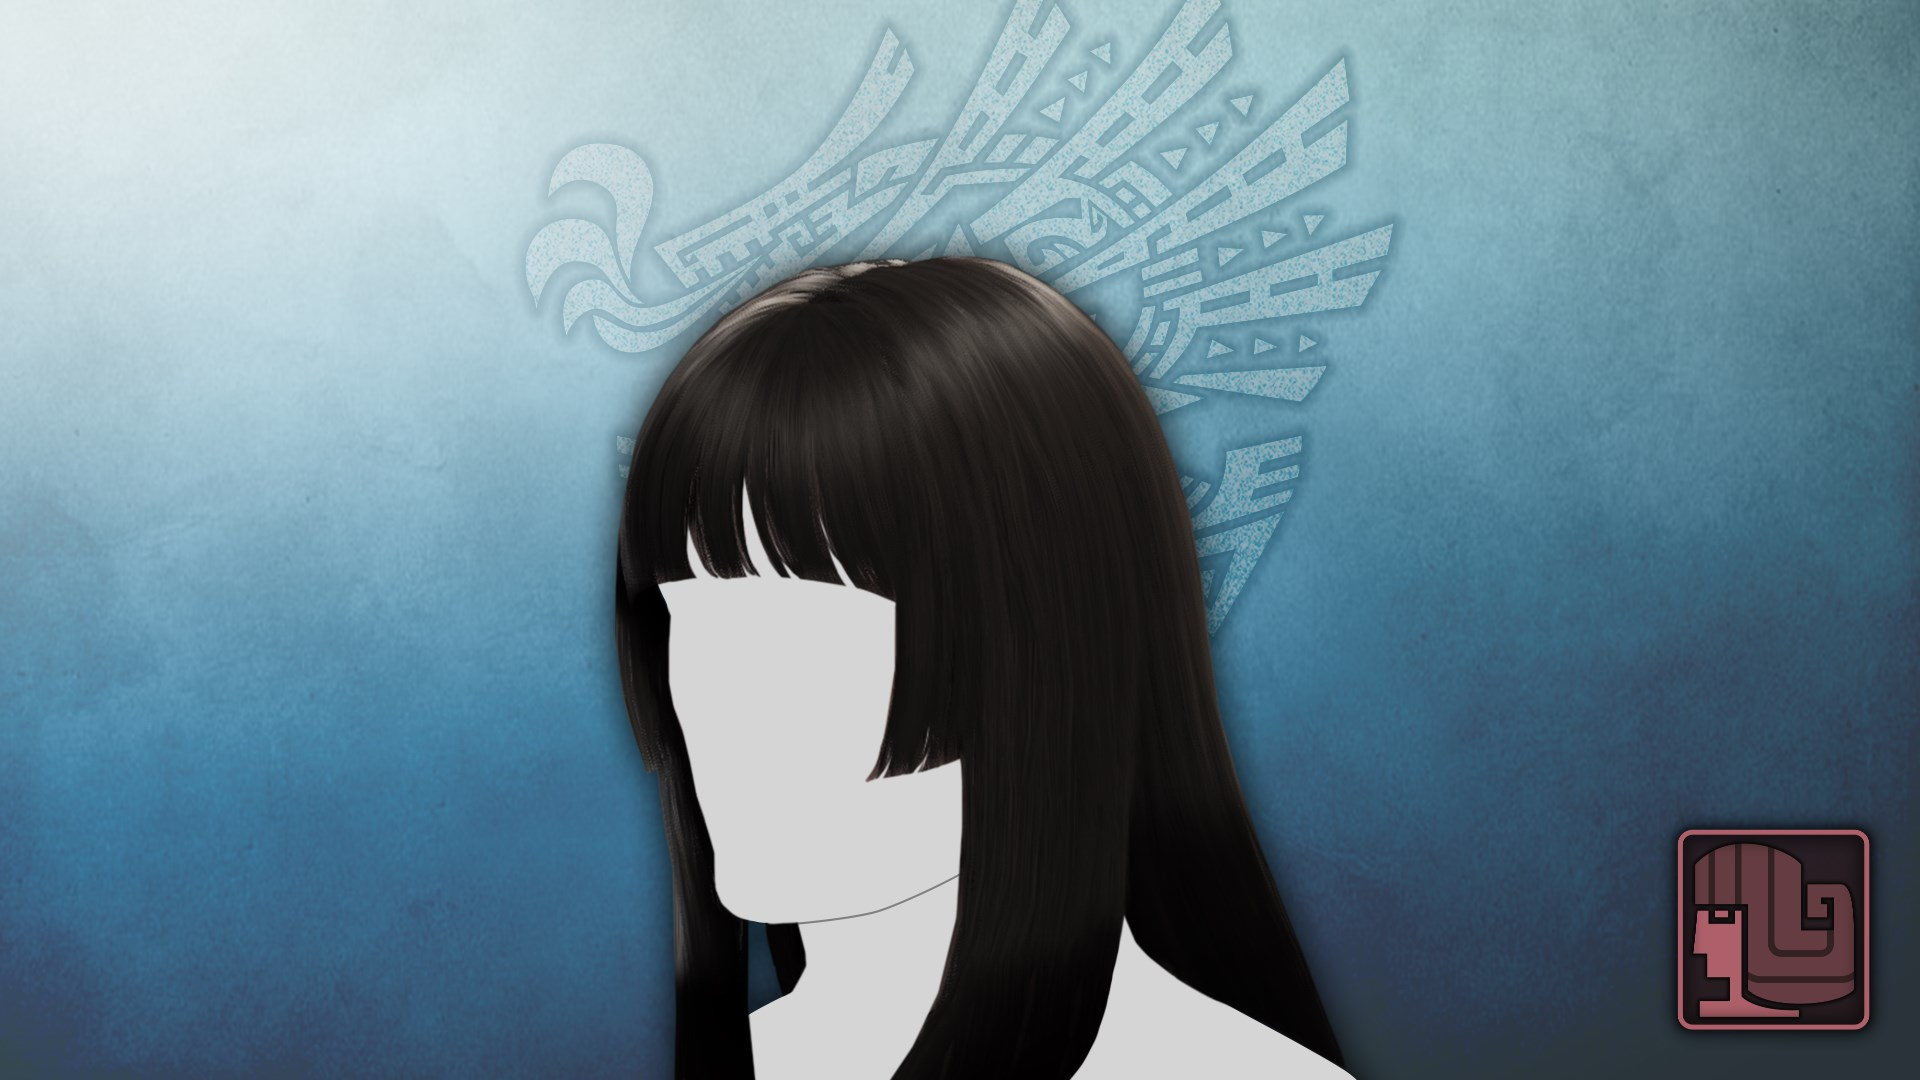 Hairstyle: Hime Cut